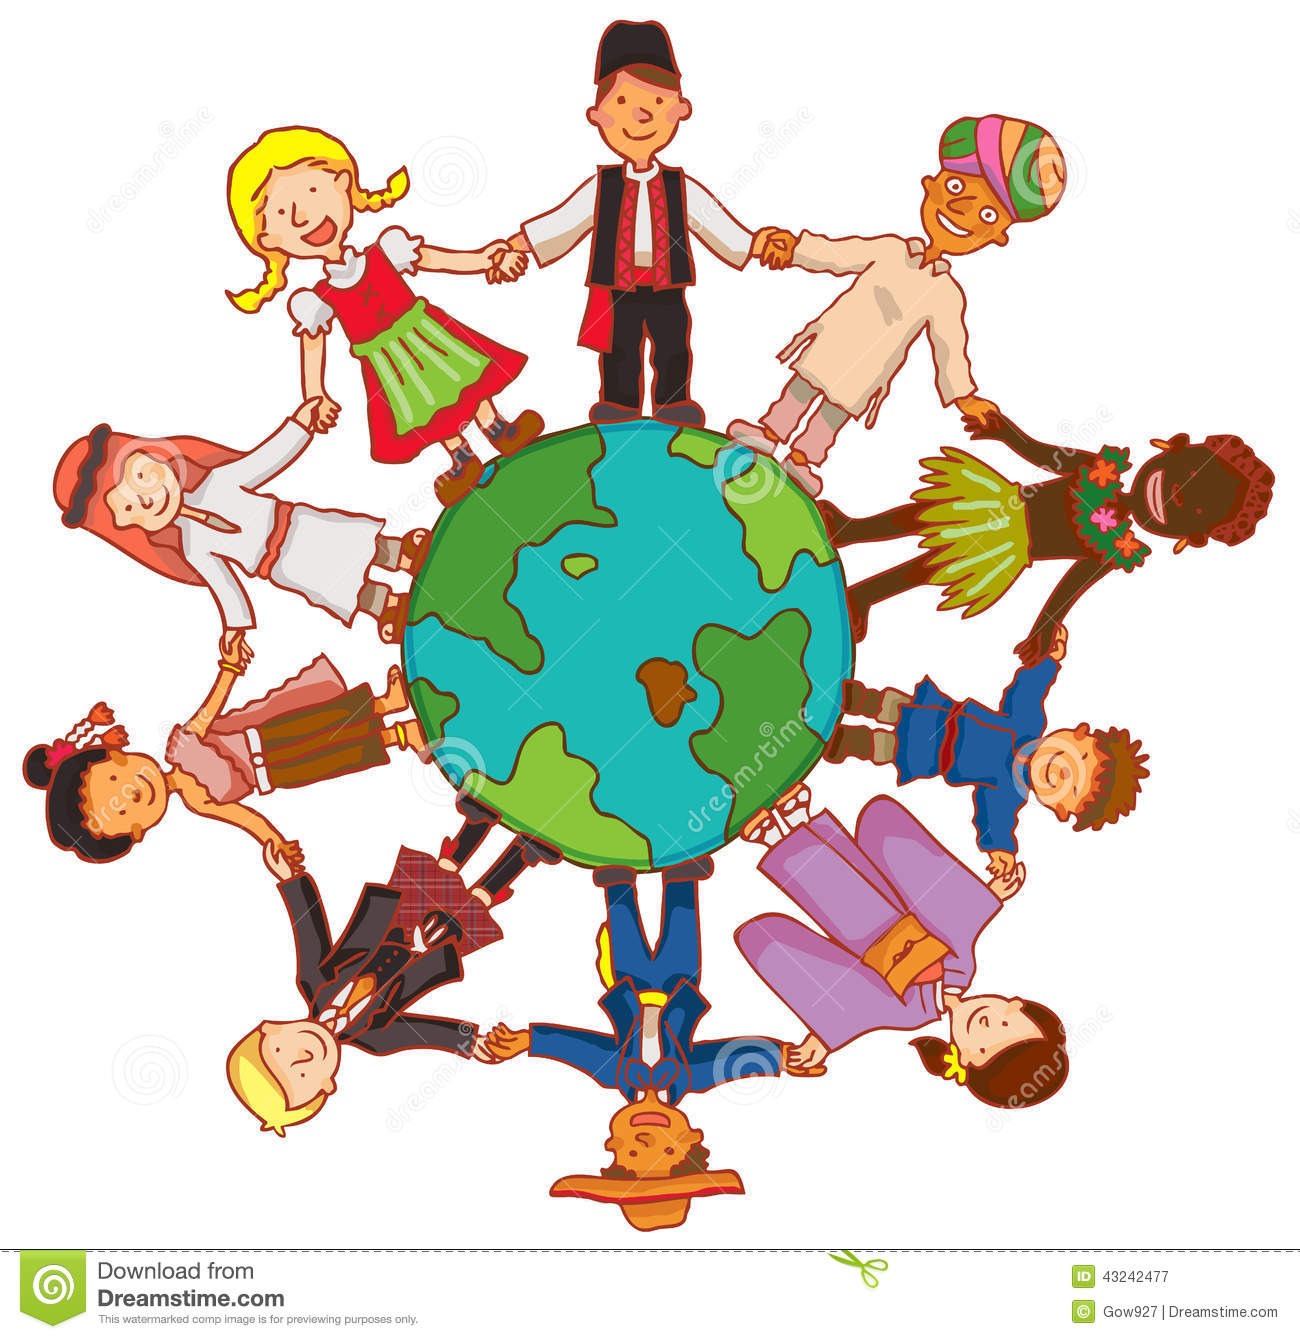 Brotherhood clipart world peace Culture Images Free Art Free